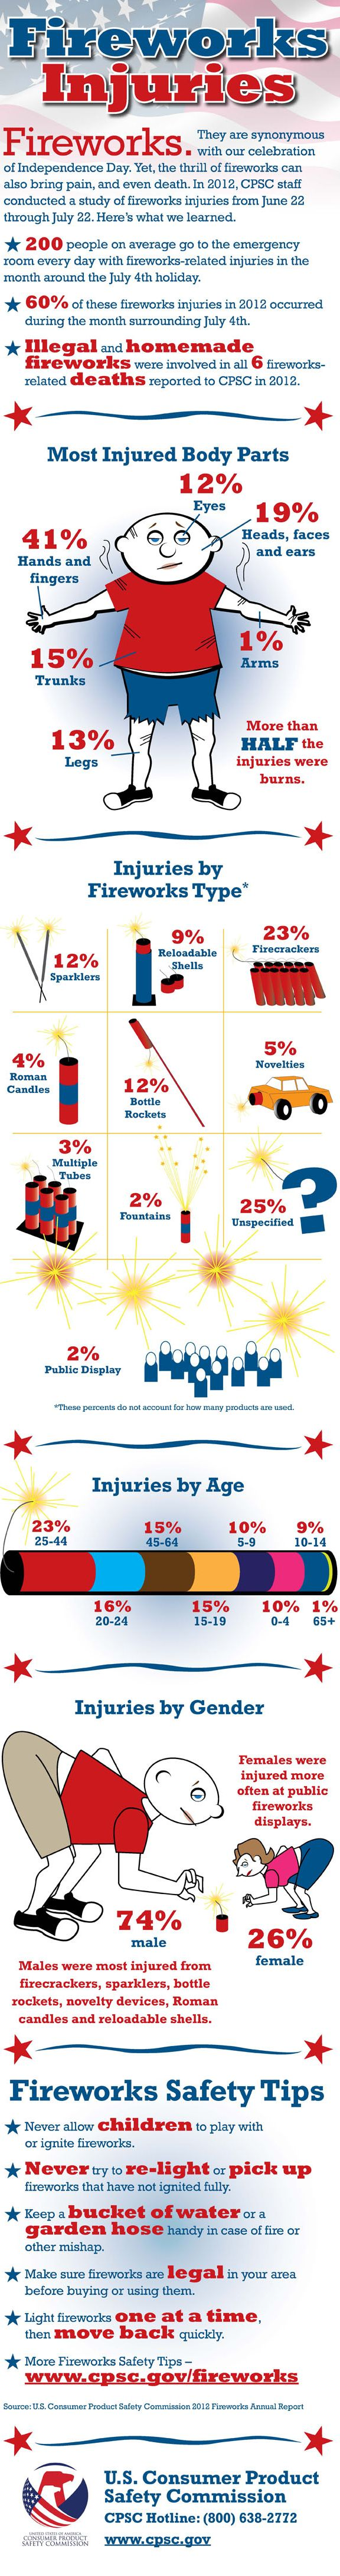 The Do's and Don'ts of Fireworks Safety  http://scrubbing.in/the-dos-and-donts-of-fireworks-safety/